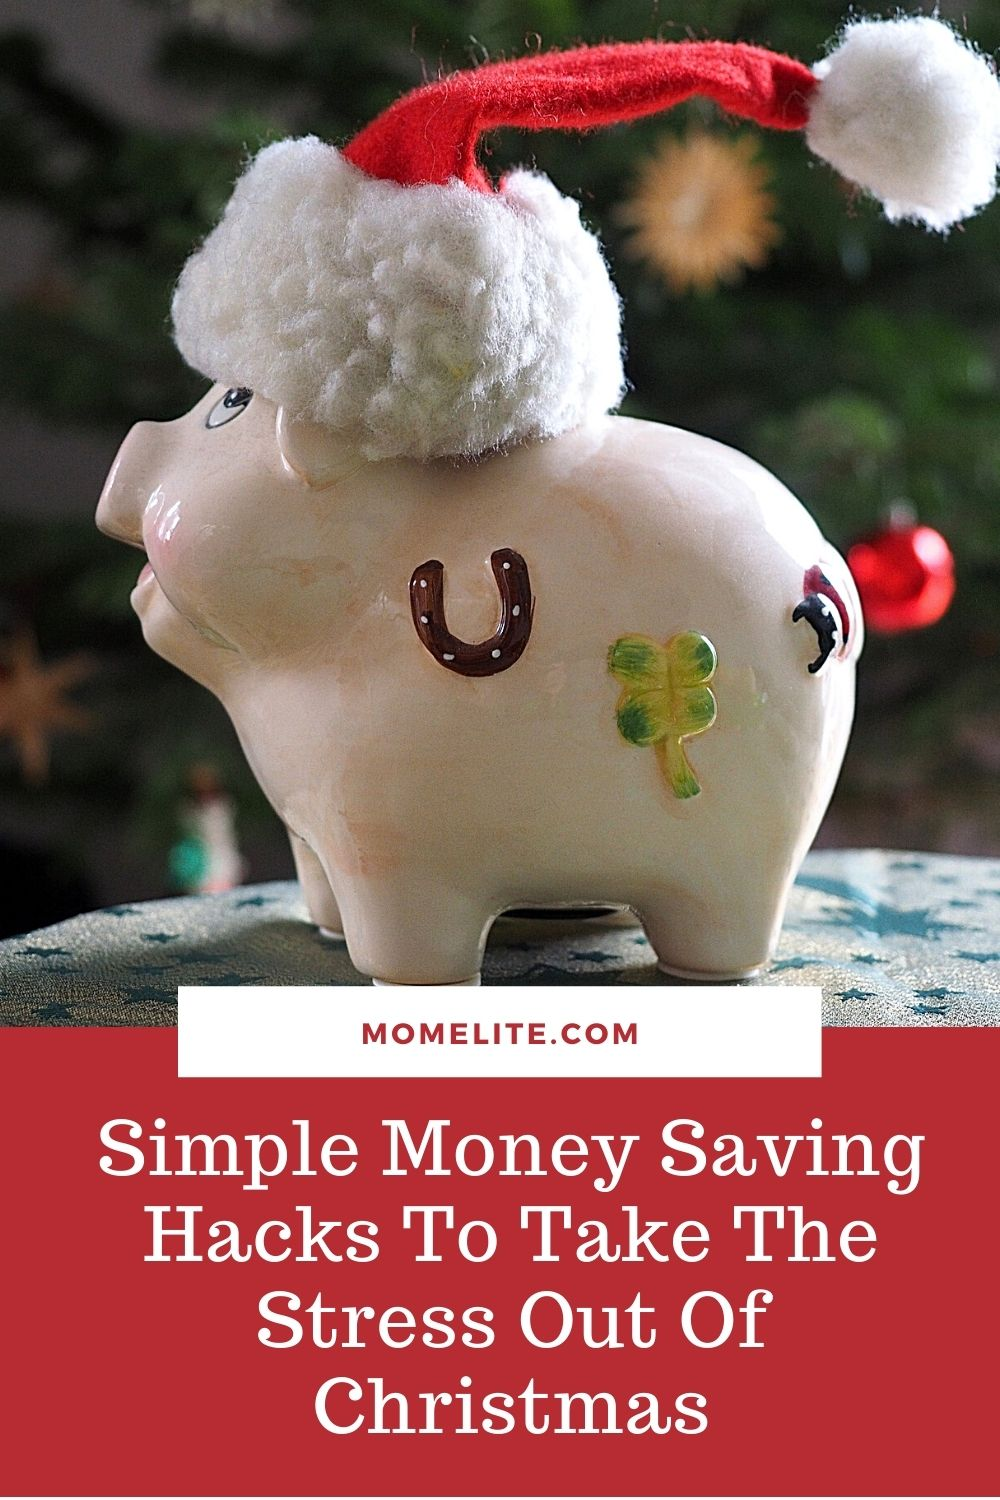 Simple Money Saving Hacks To Take The Stress Out Of Christmas